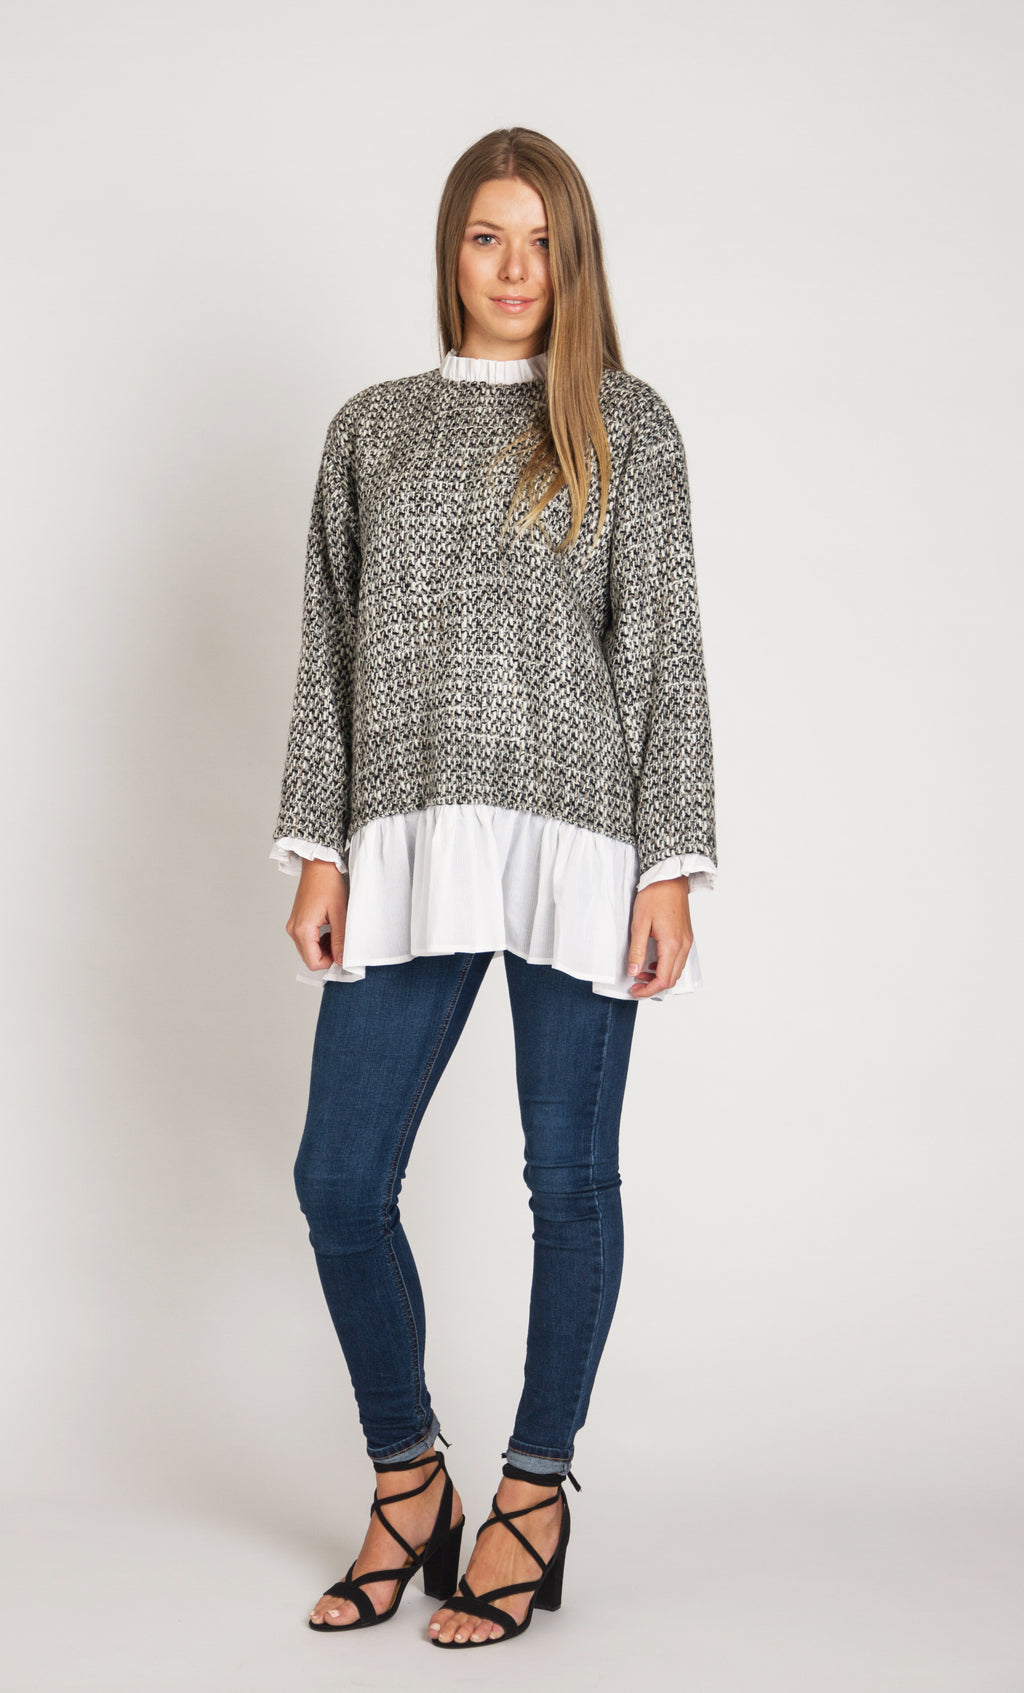 Woven Top with Sleeve and Hem Flounce